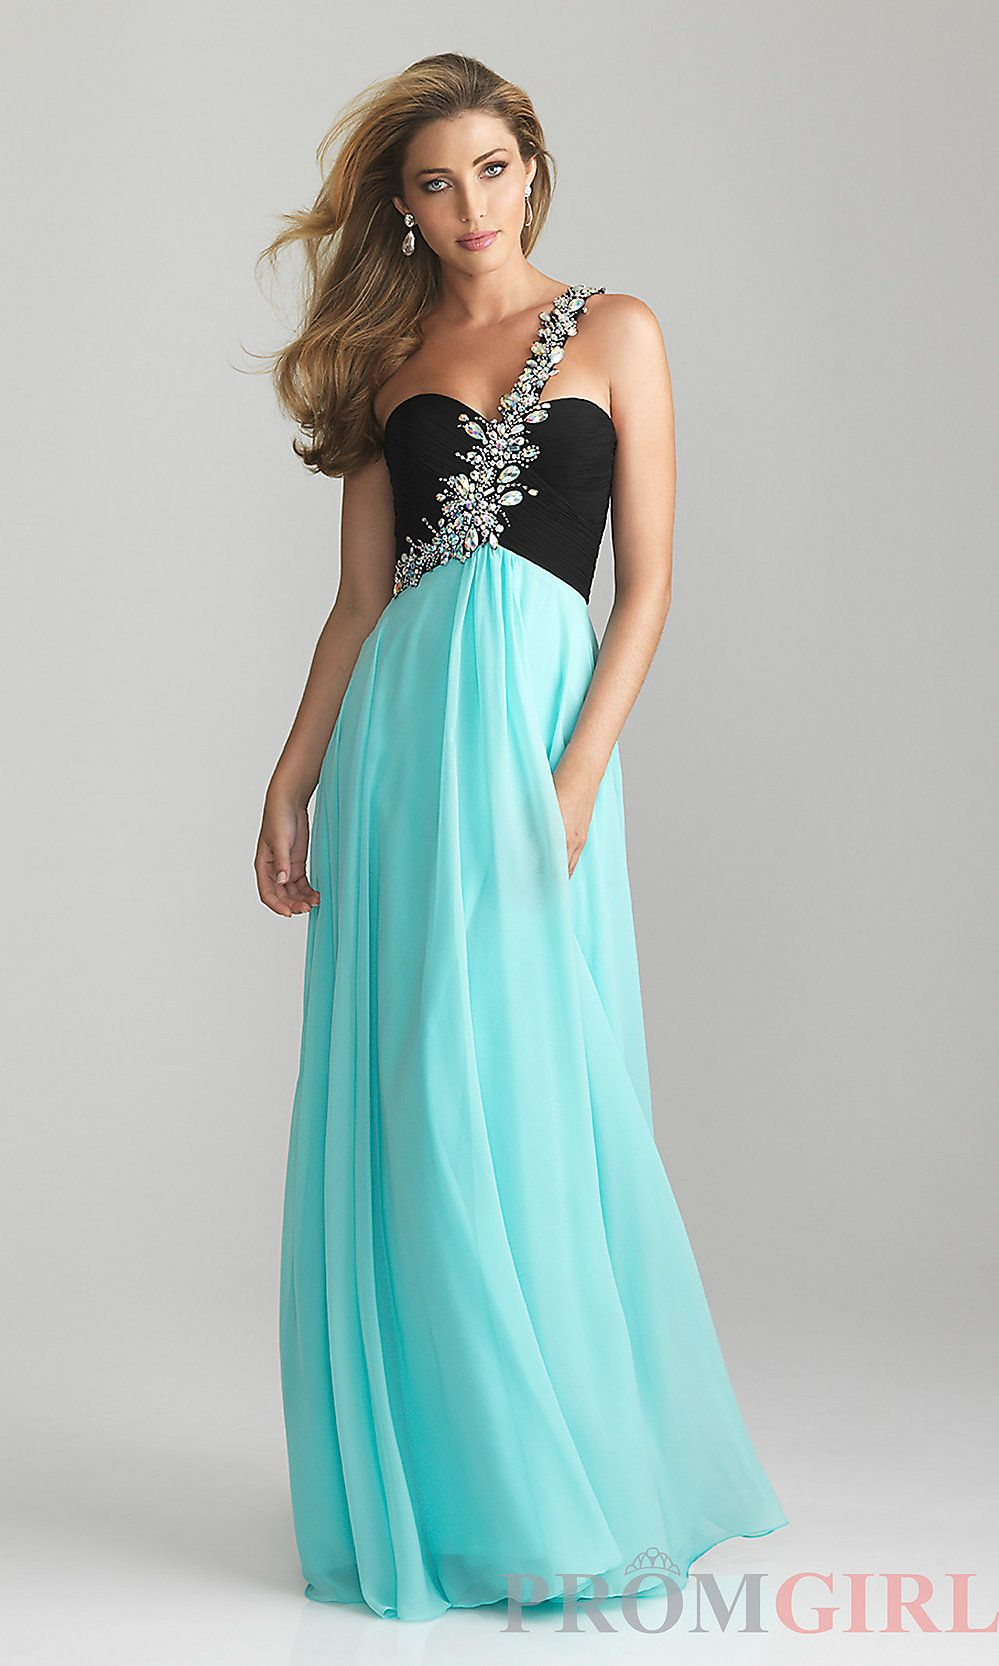 Pin by taylor jones on prom pinterest formal nice dresses and prom